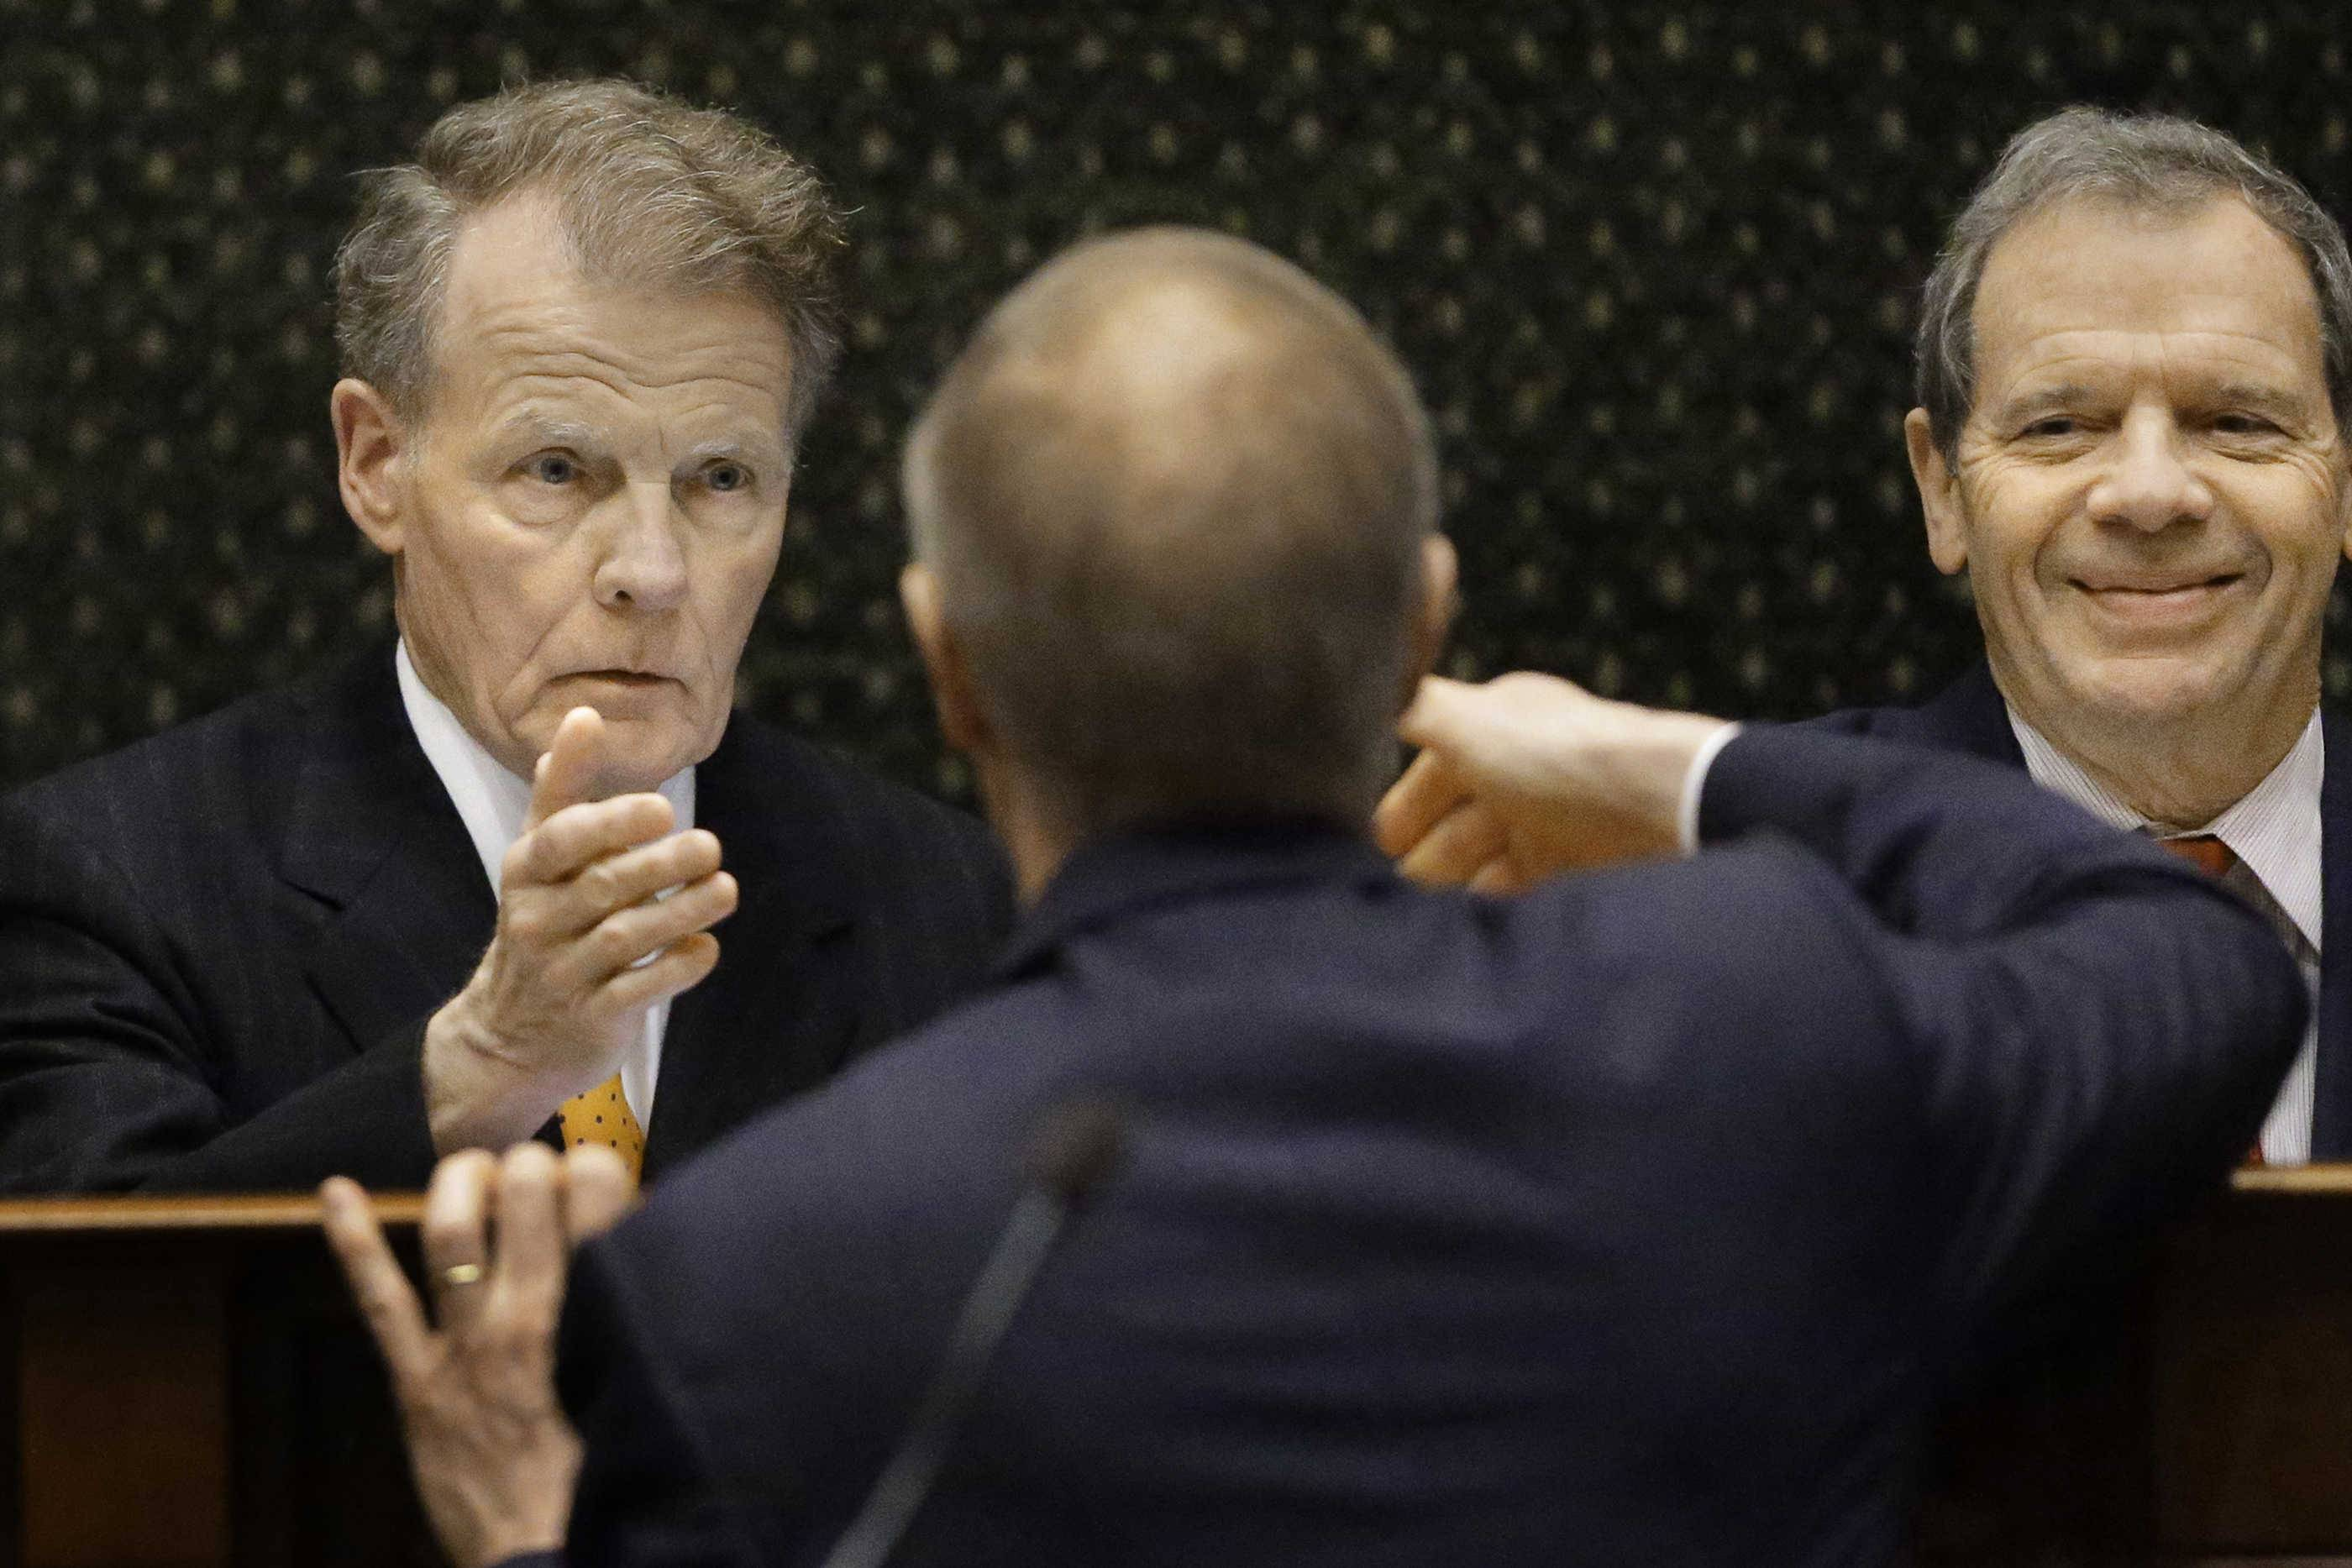 Who replaces Blagojevich as the bad guy now, Rauner or Madigan?